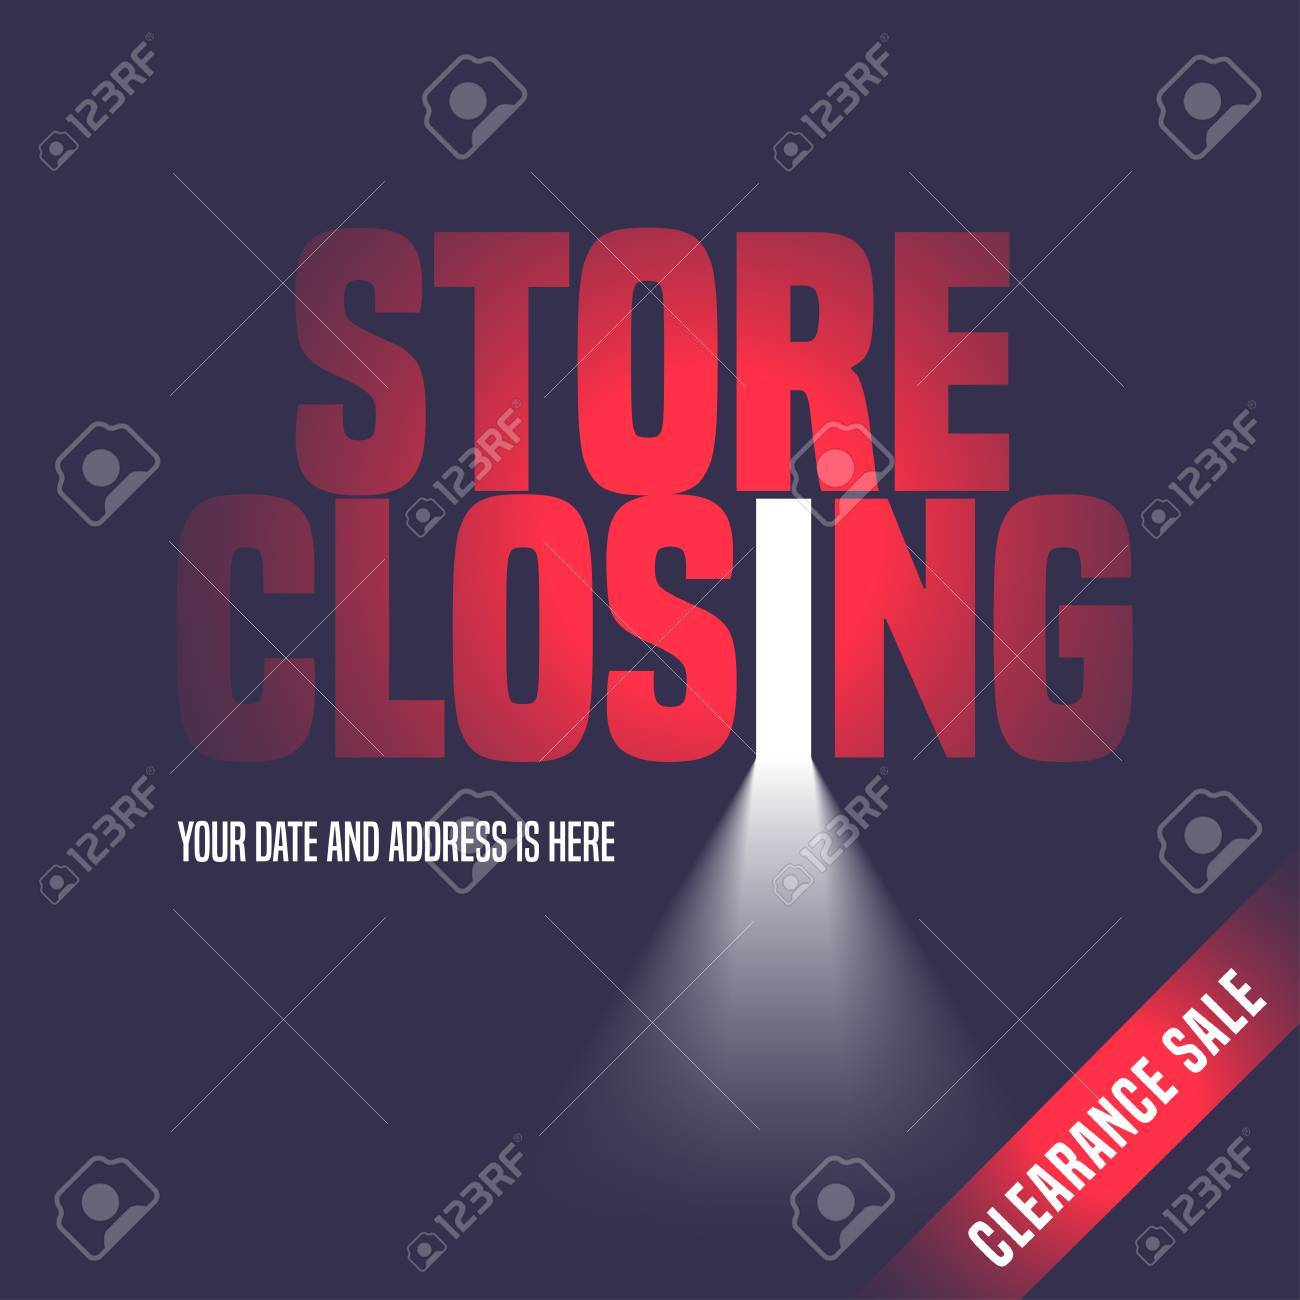 Store closing sale vector illustration background with open door light and lettering sign. & Store Closing Sale Vector Illustration Background With Open ...